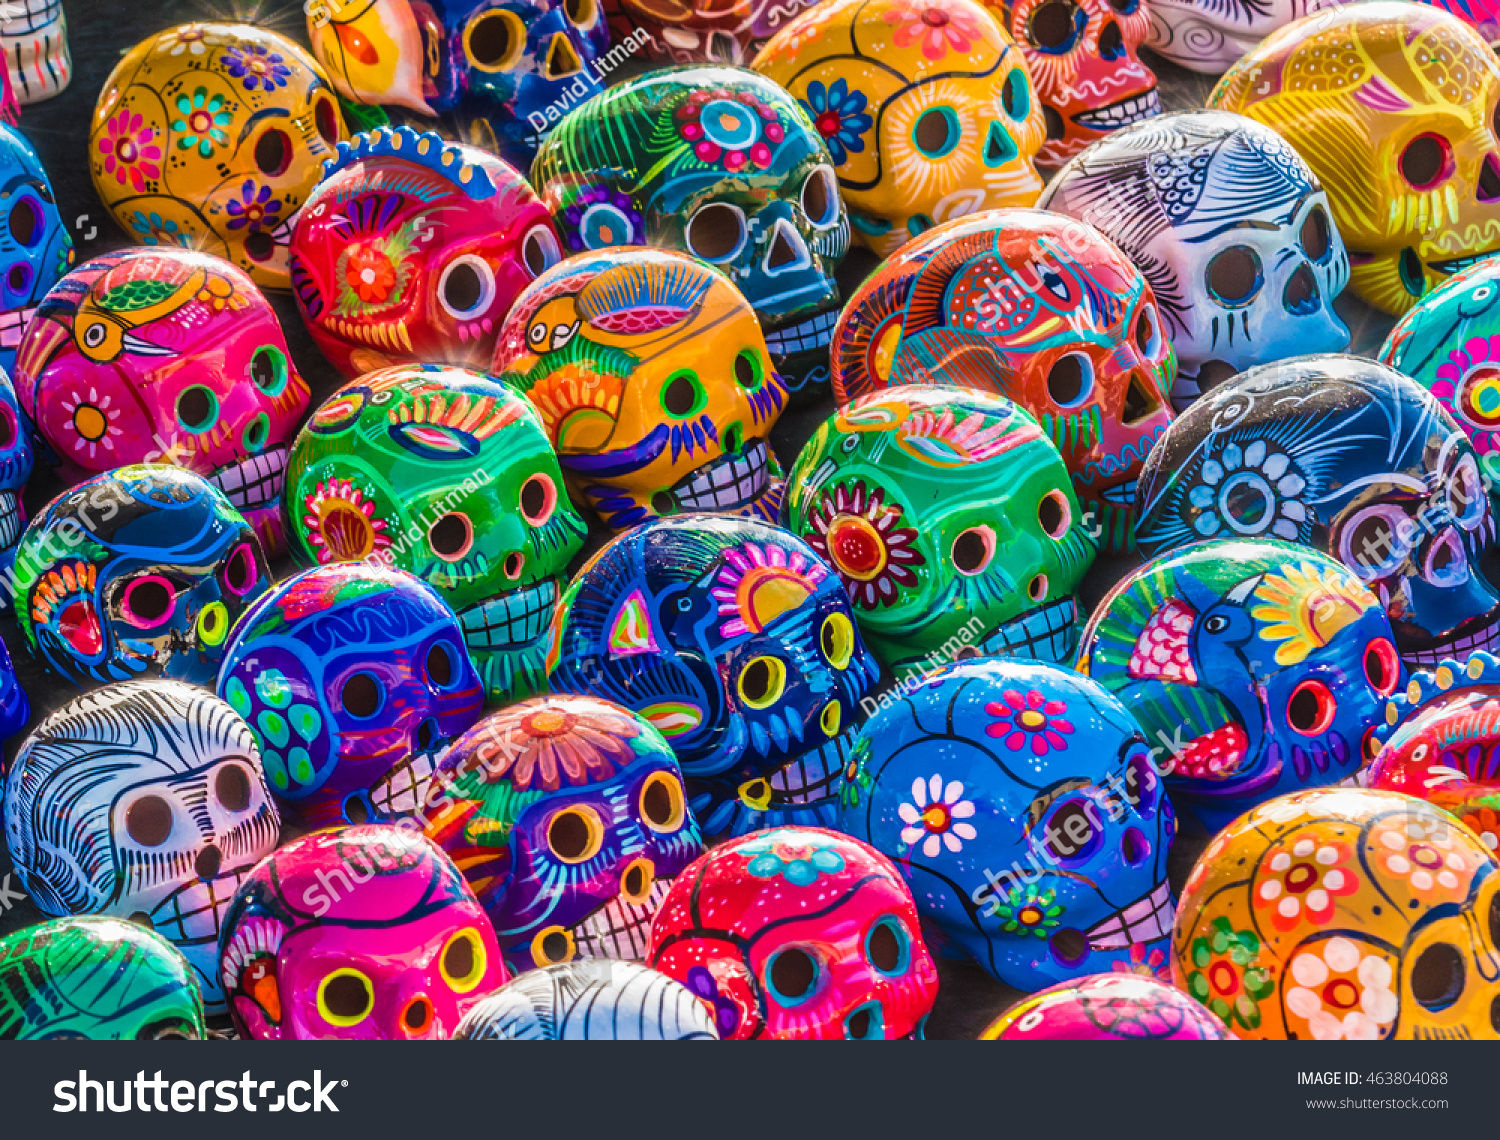 Stock images royalty free images vectors shutterstock stock photo mexican culture fiesta colorful colourful traditional mexican hispanic ceramic pottery day of 463804088g dailygadgetfo Choice Image